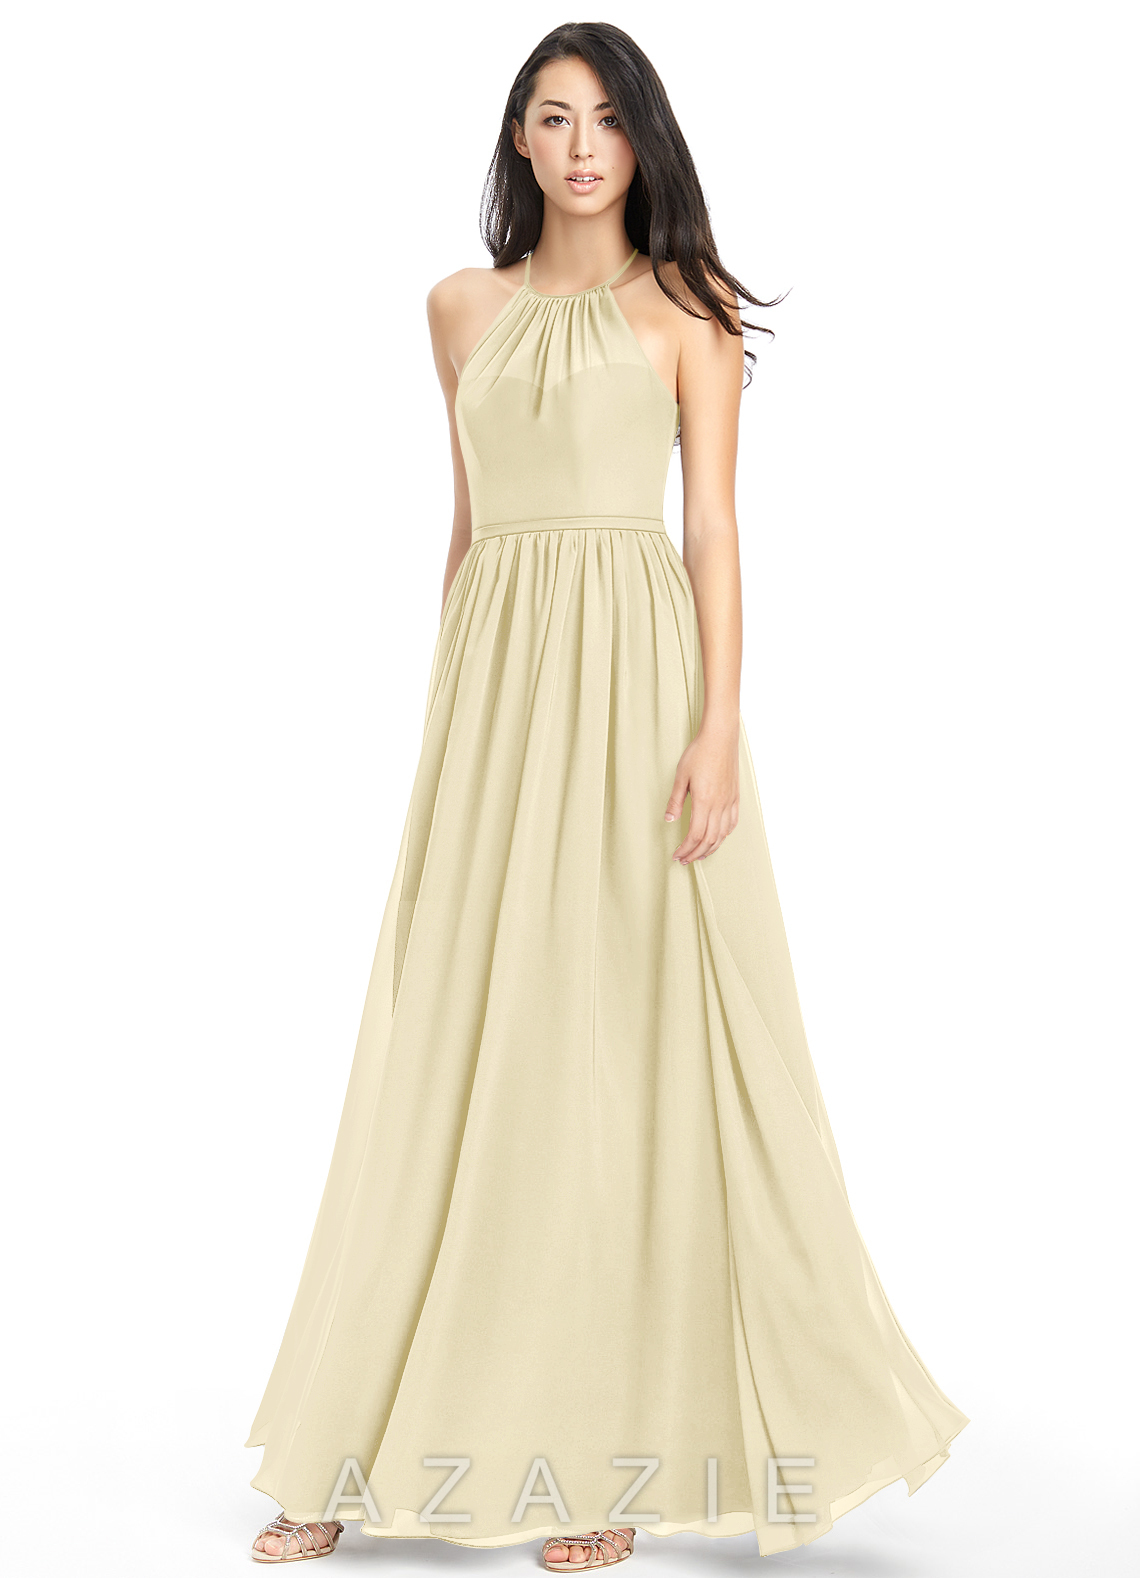 ec073f59470d6f Azazie Kailyn Bridesmaid Dress - Champagne | Azazie